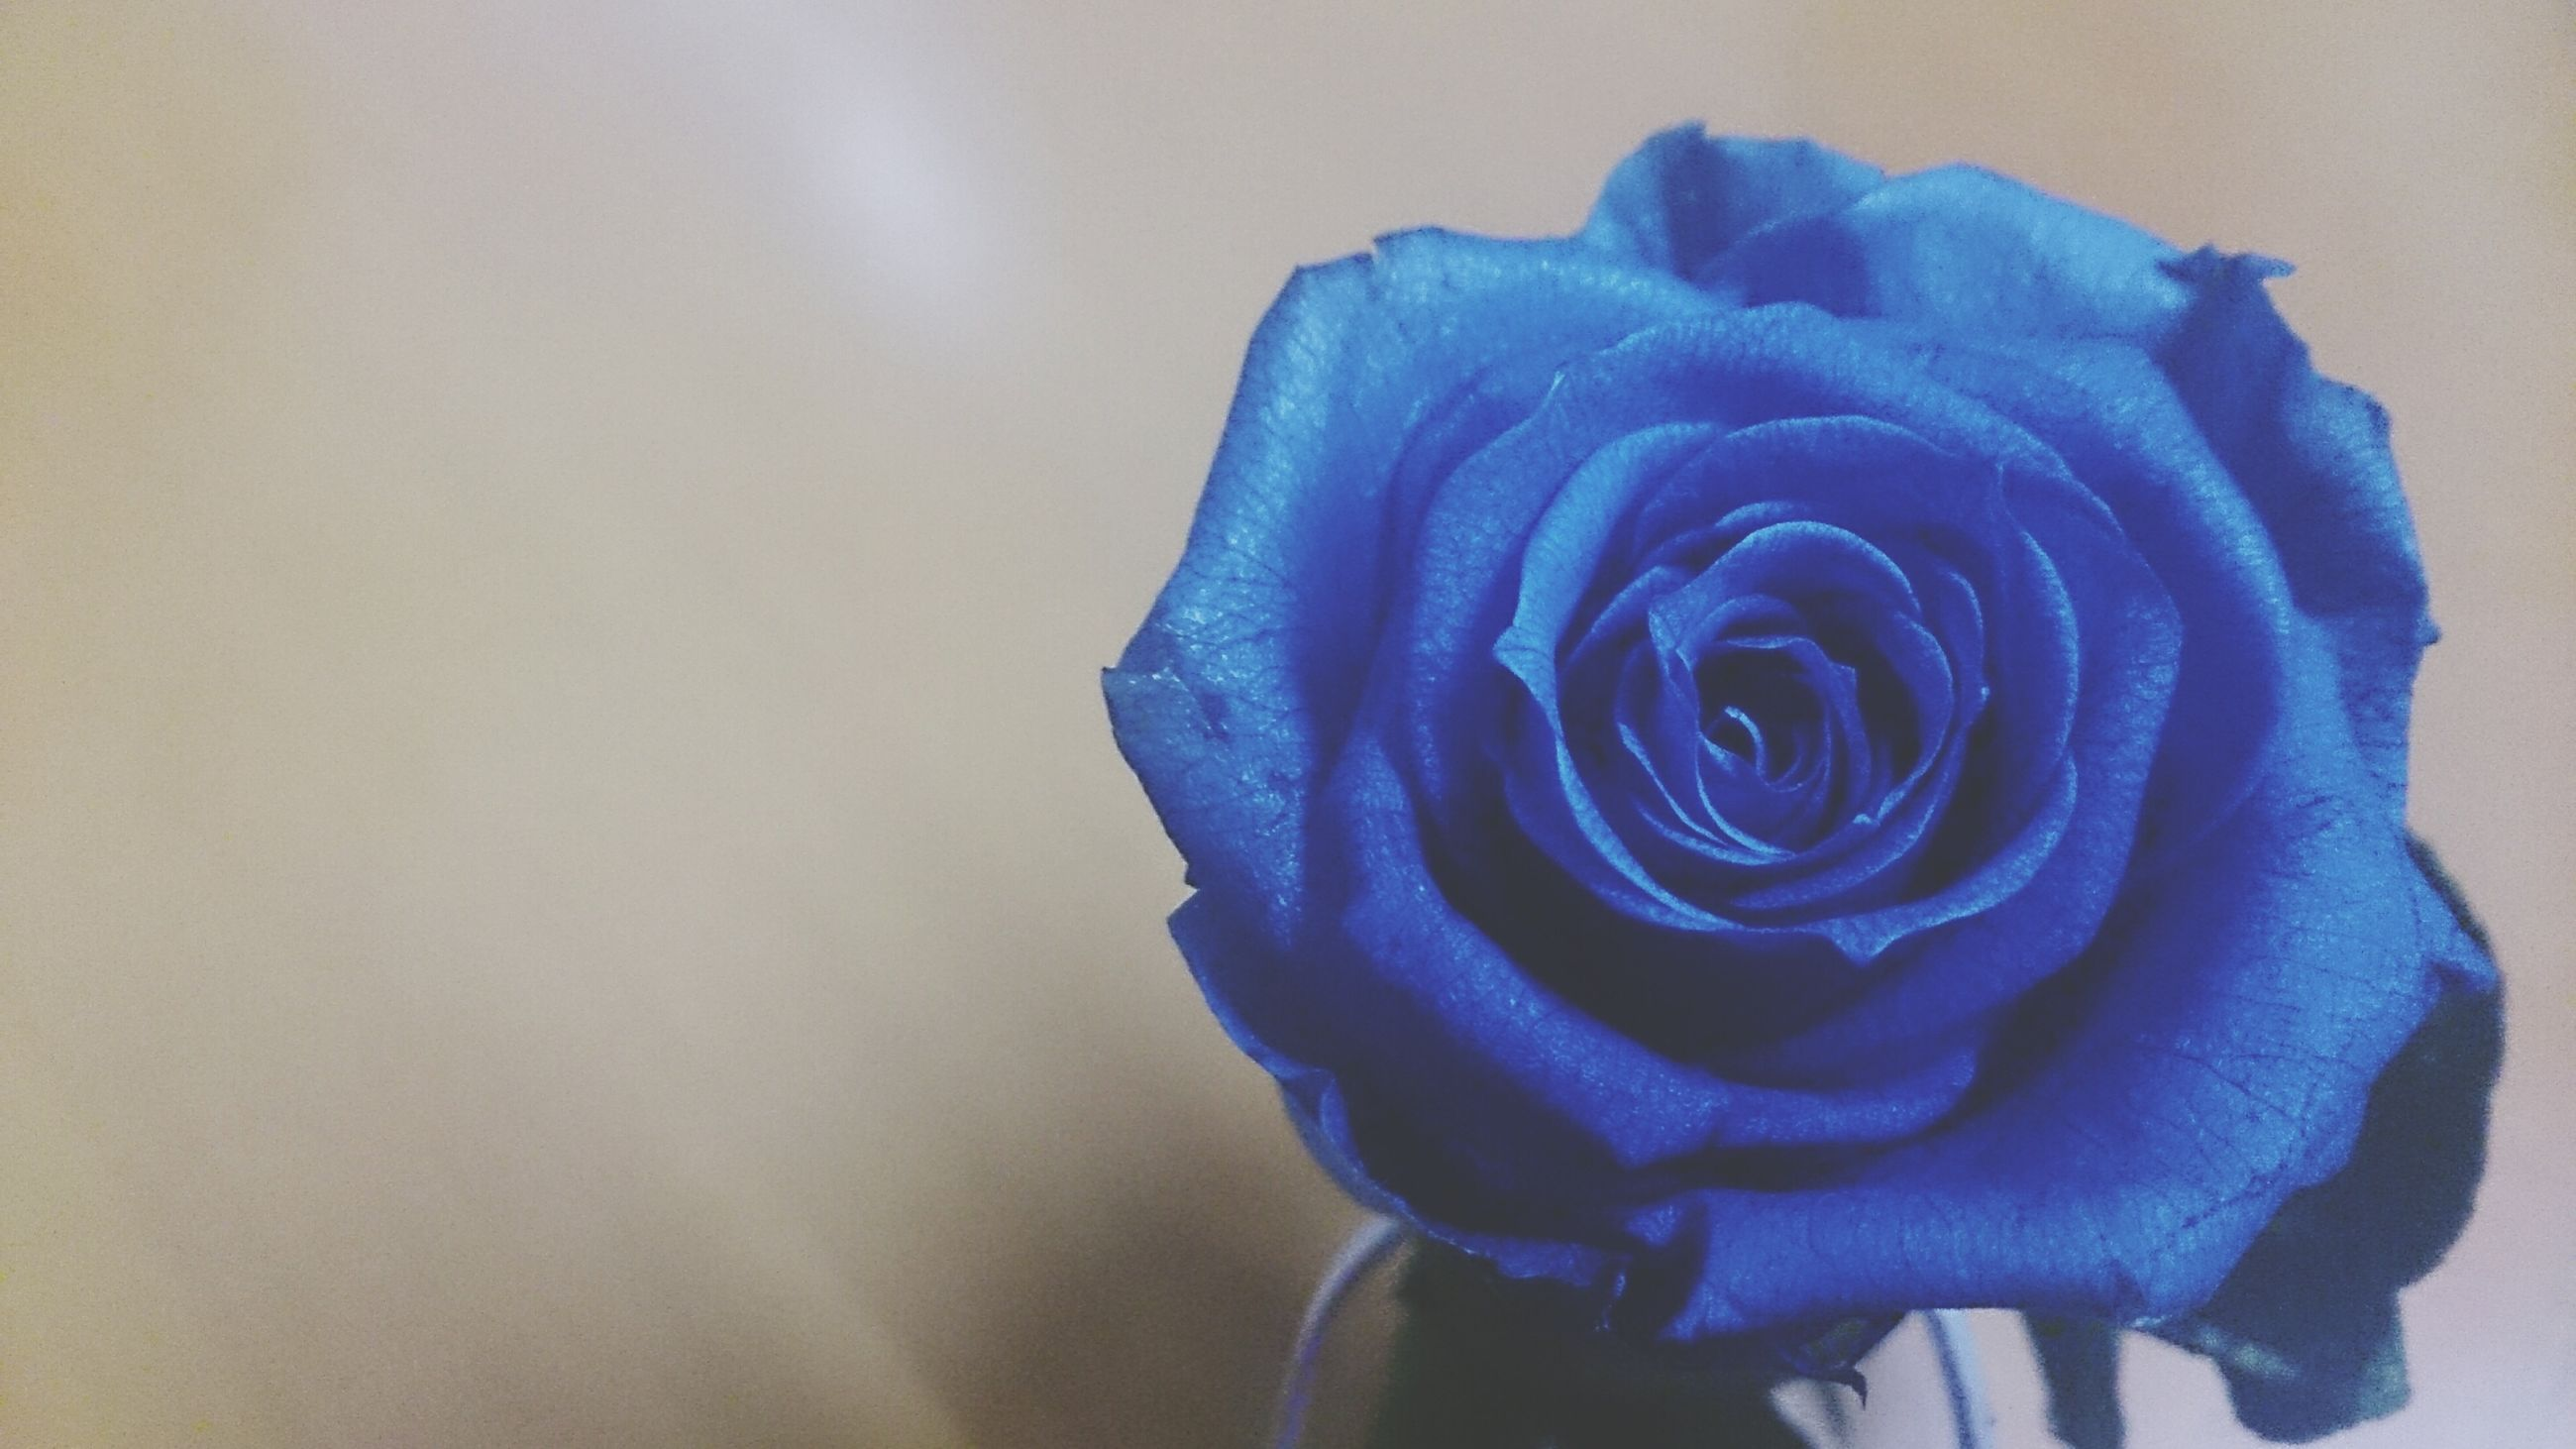 flower, petal, flower head, fragility, rose - flower, close-up, freshness, beauty in nature, purple, single flower, studio shot, indoors, rose, nature, no people, softness, blue, focus on foreground, blooming, copy space